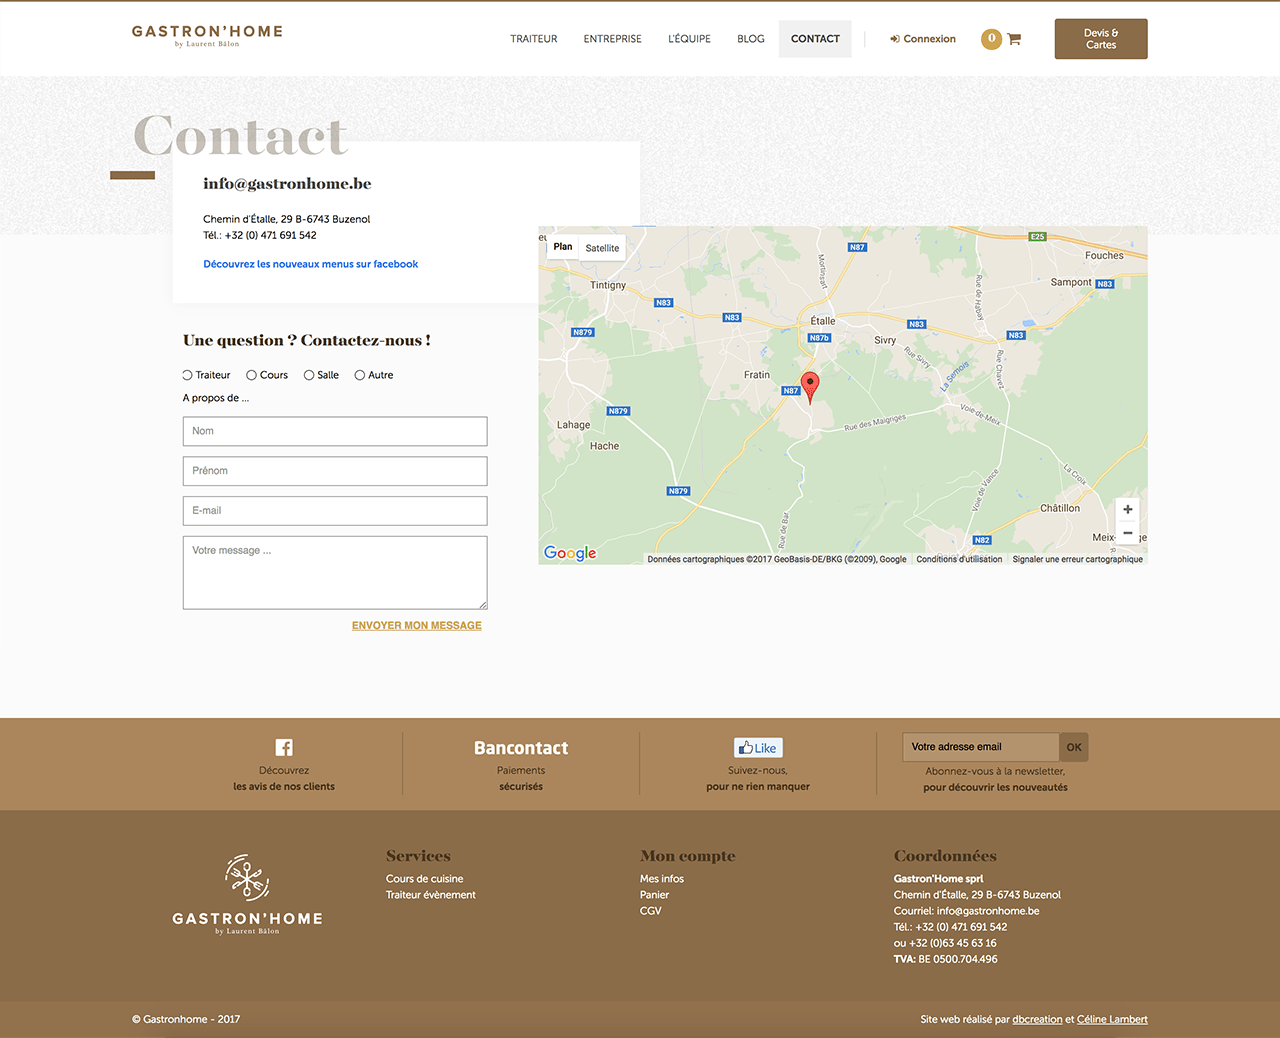 Page contact du site gastronhome.be